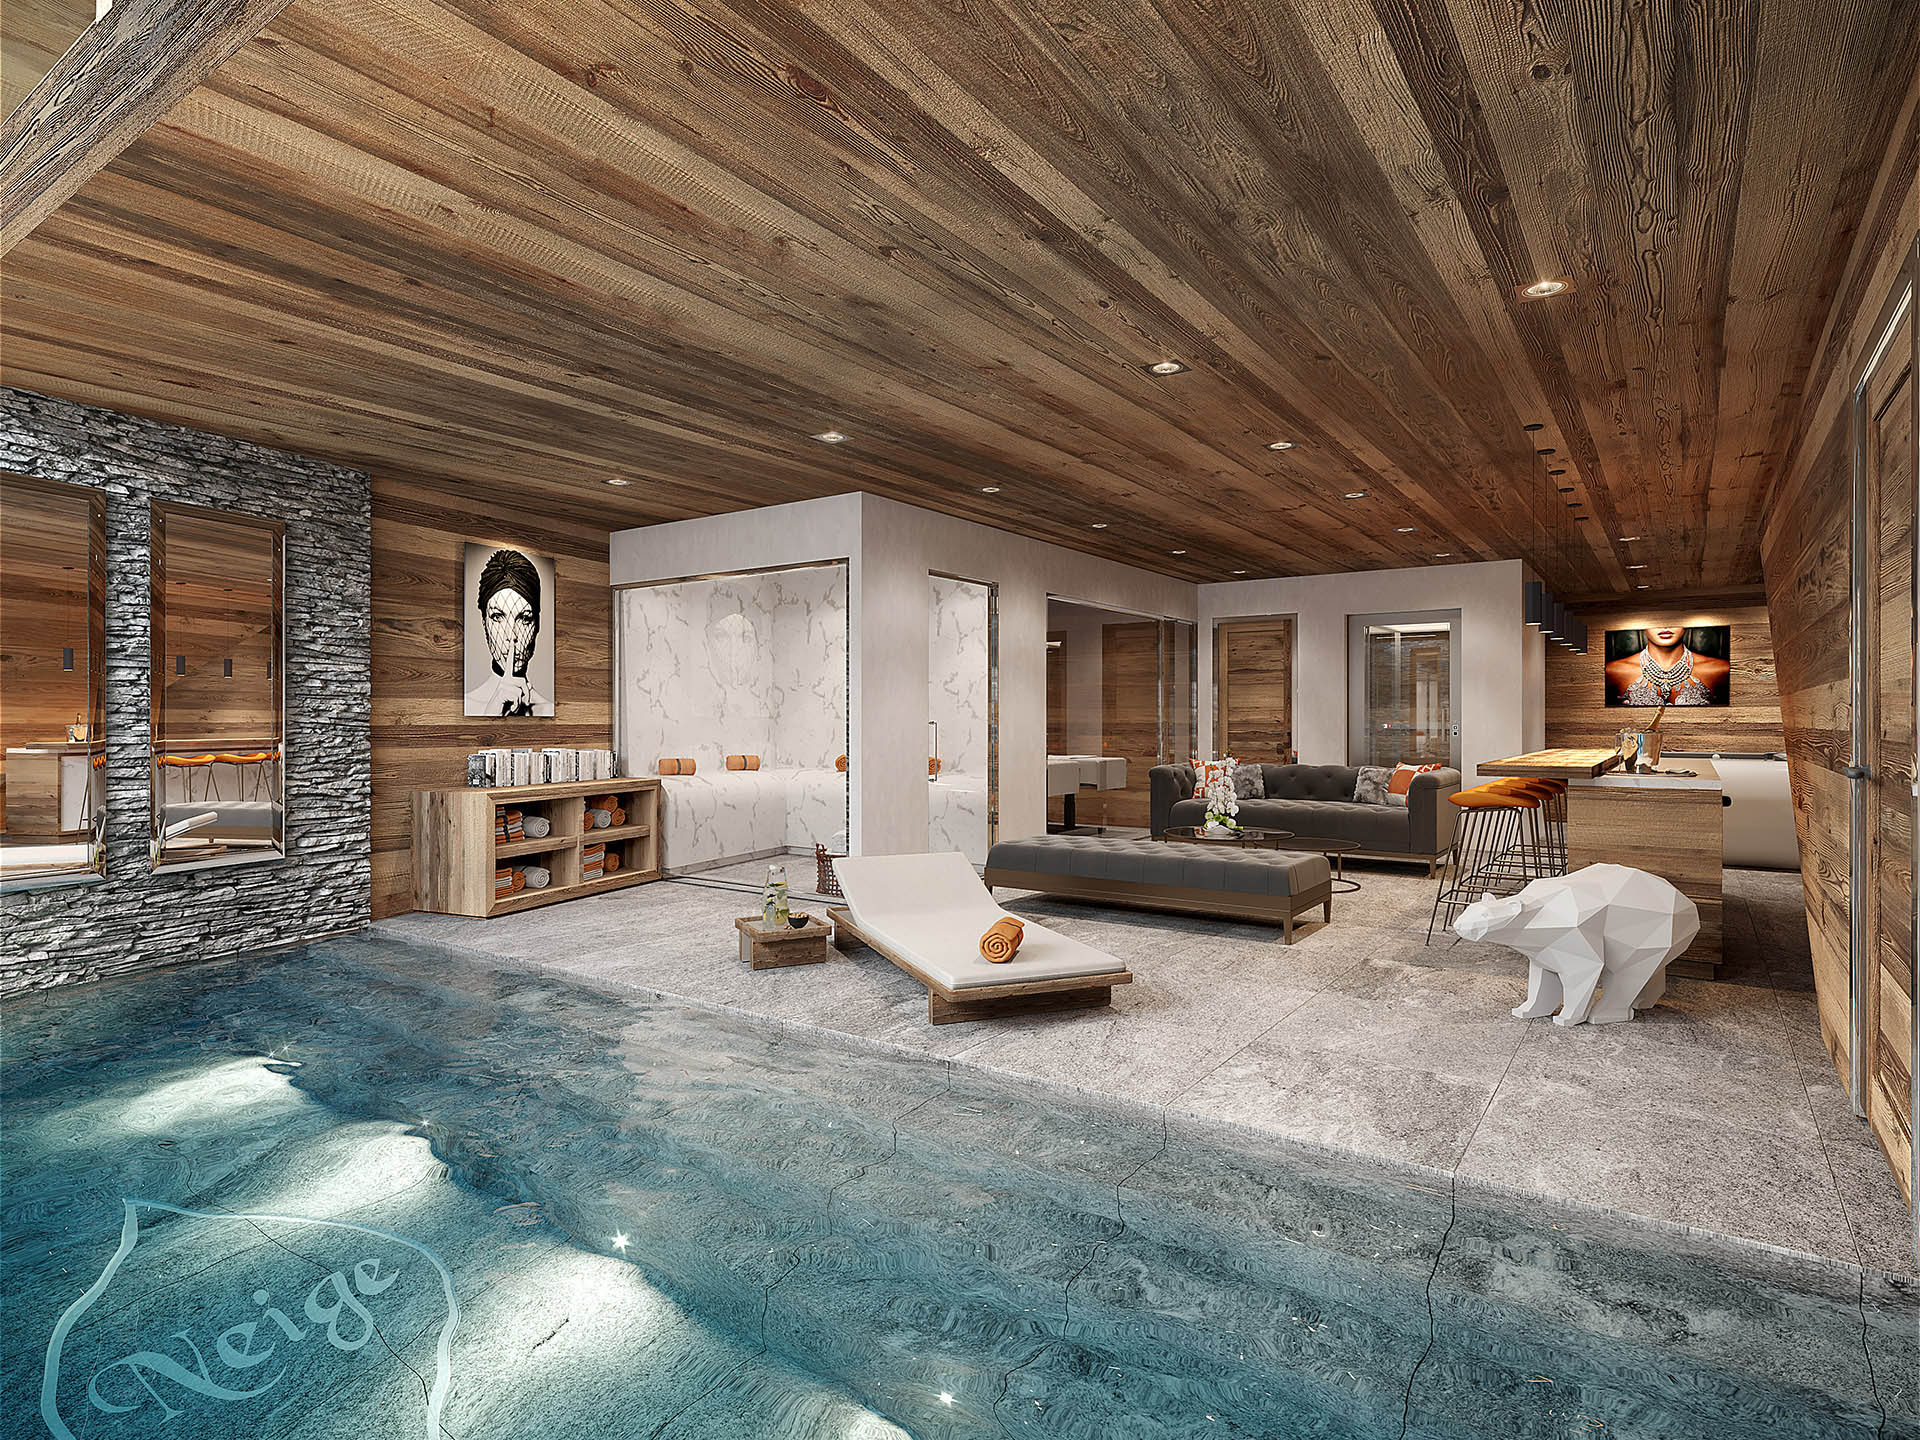 3D creation of a pool inside a mountain chalet